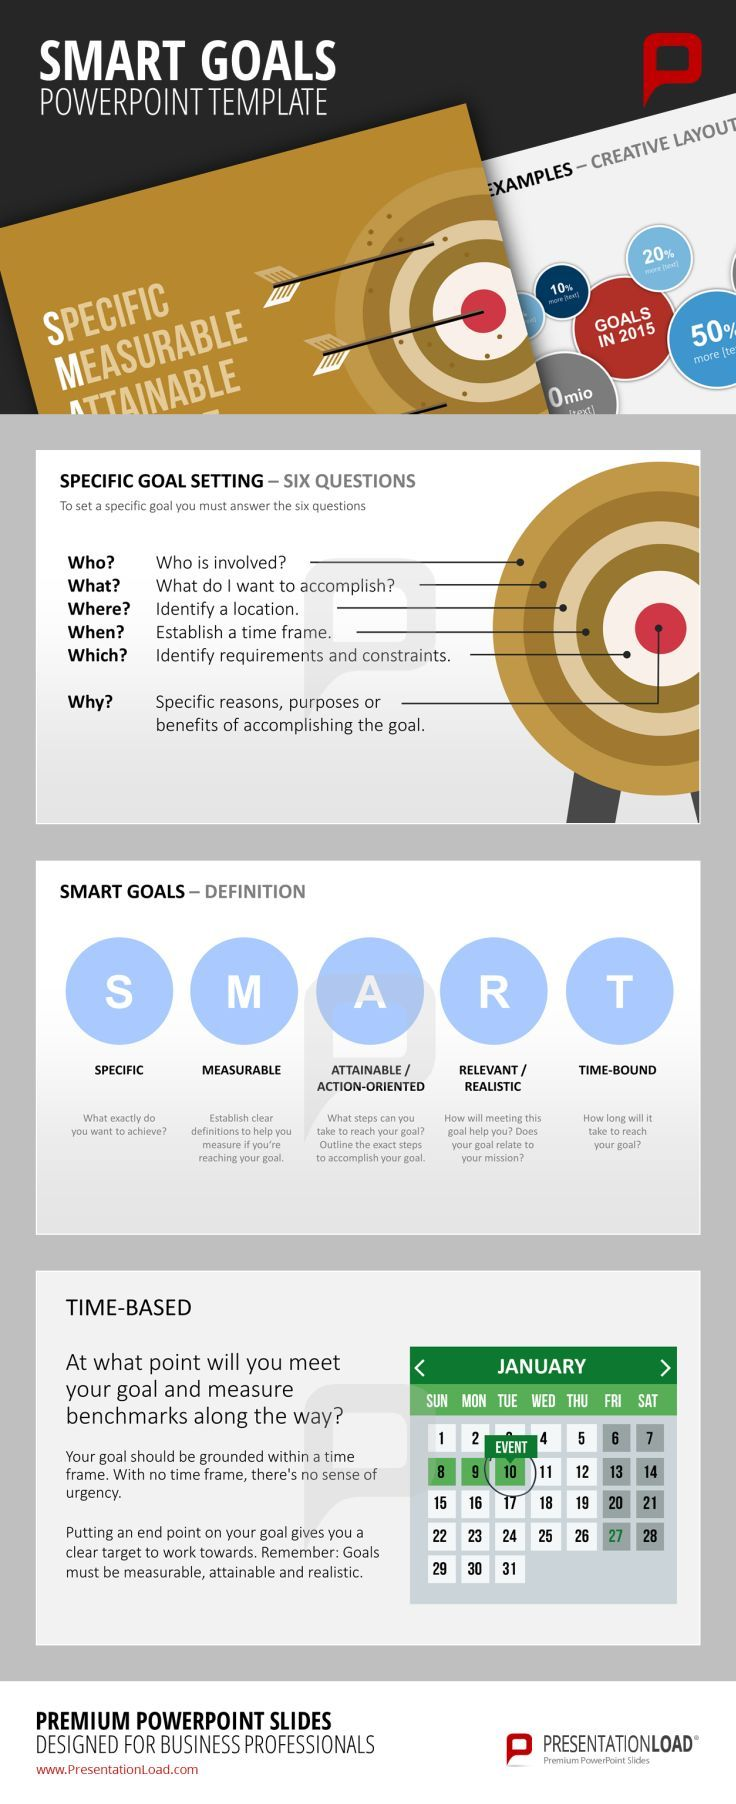 17 best images about smart goals powerpoint templates on pinterest goals template graphics. Black Bedroom Furniture Sets. Home Design Ideas